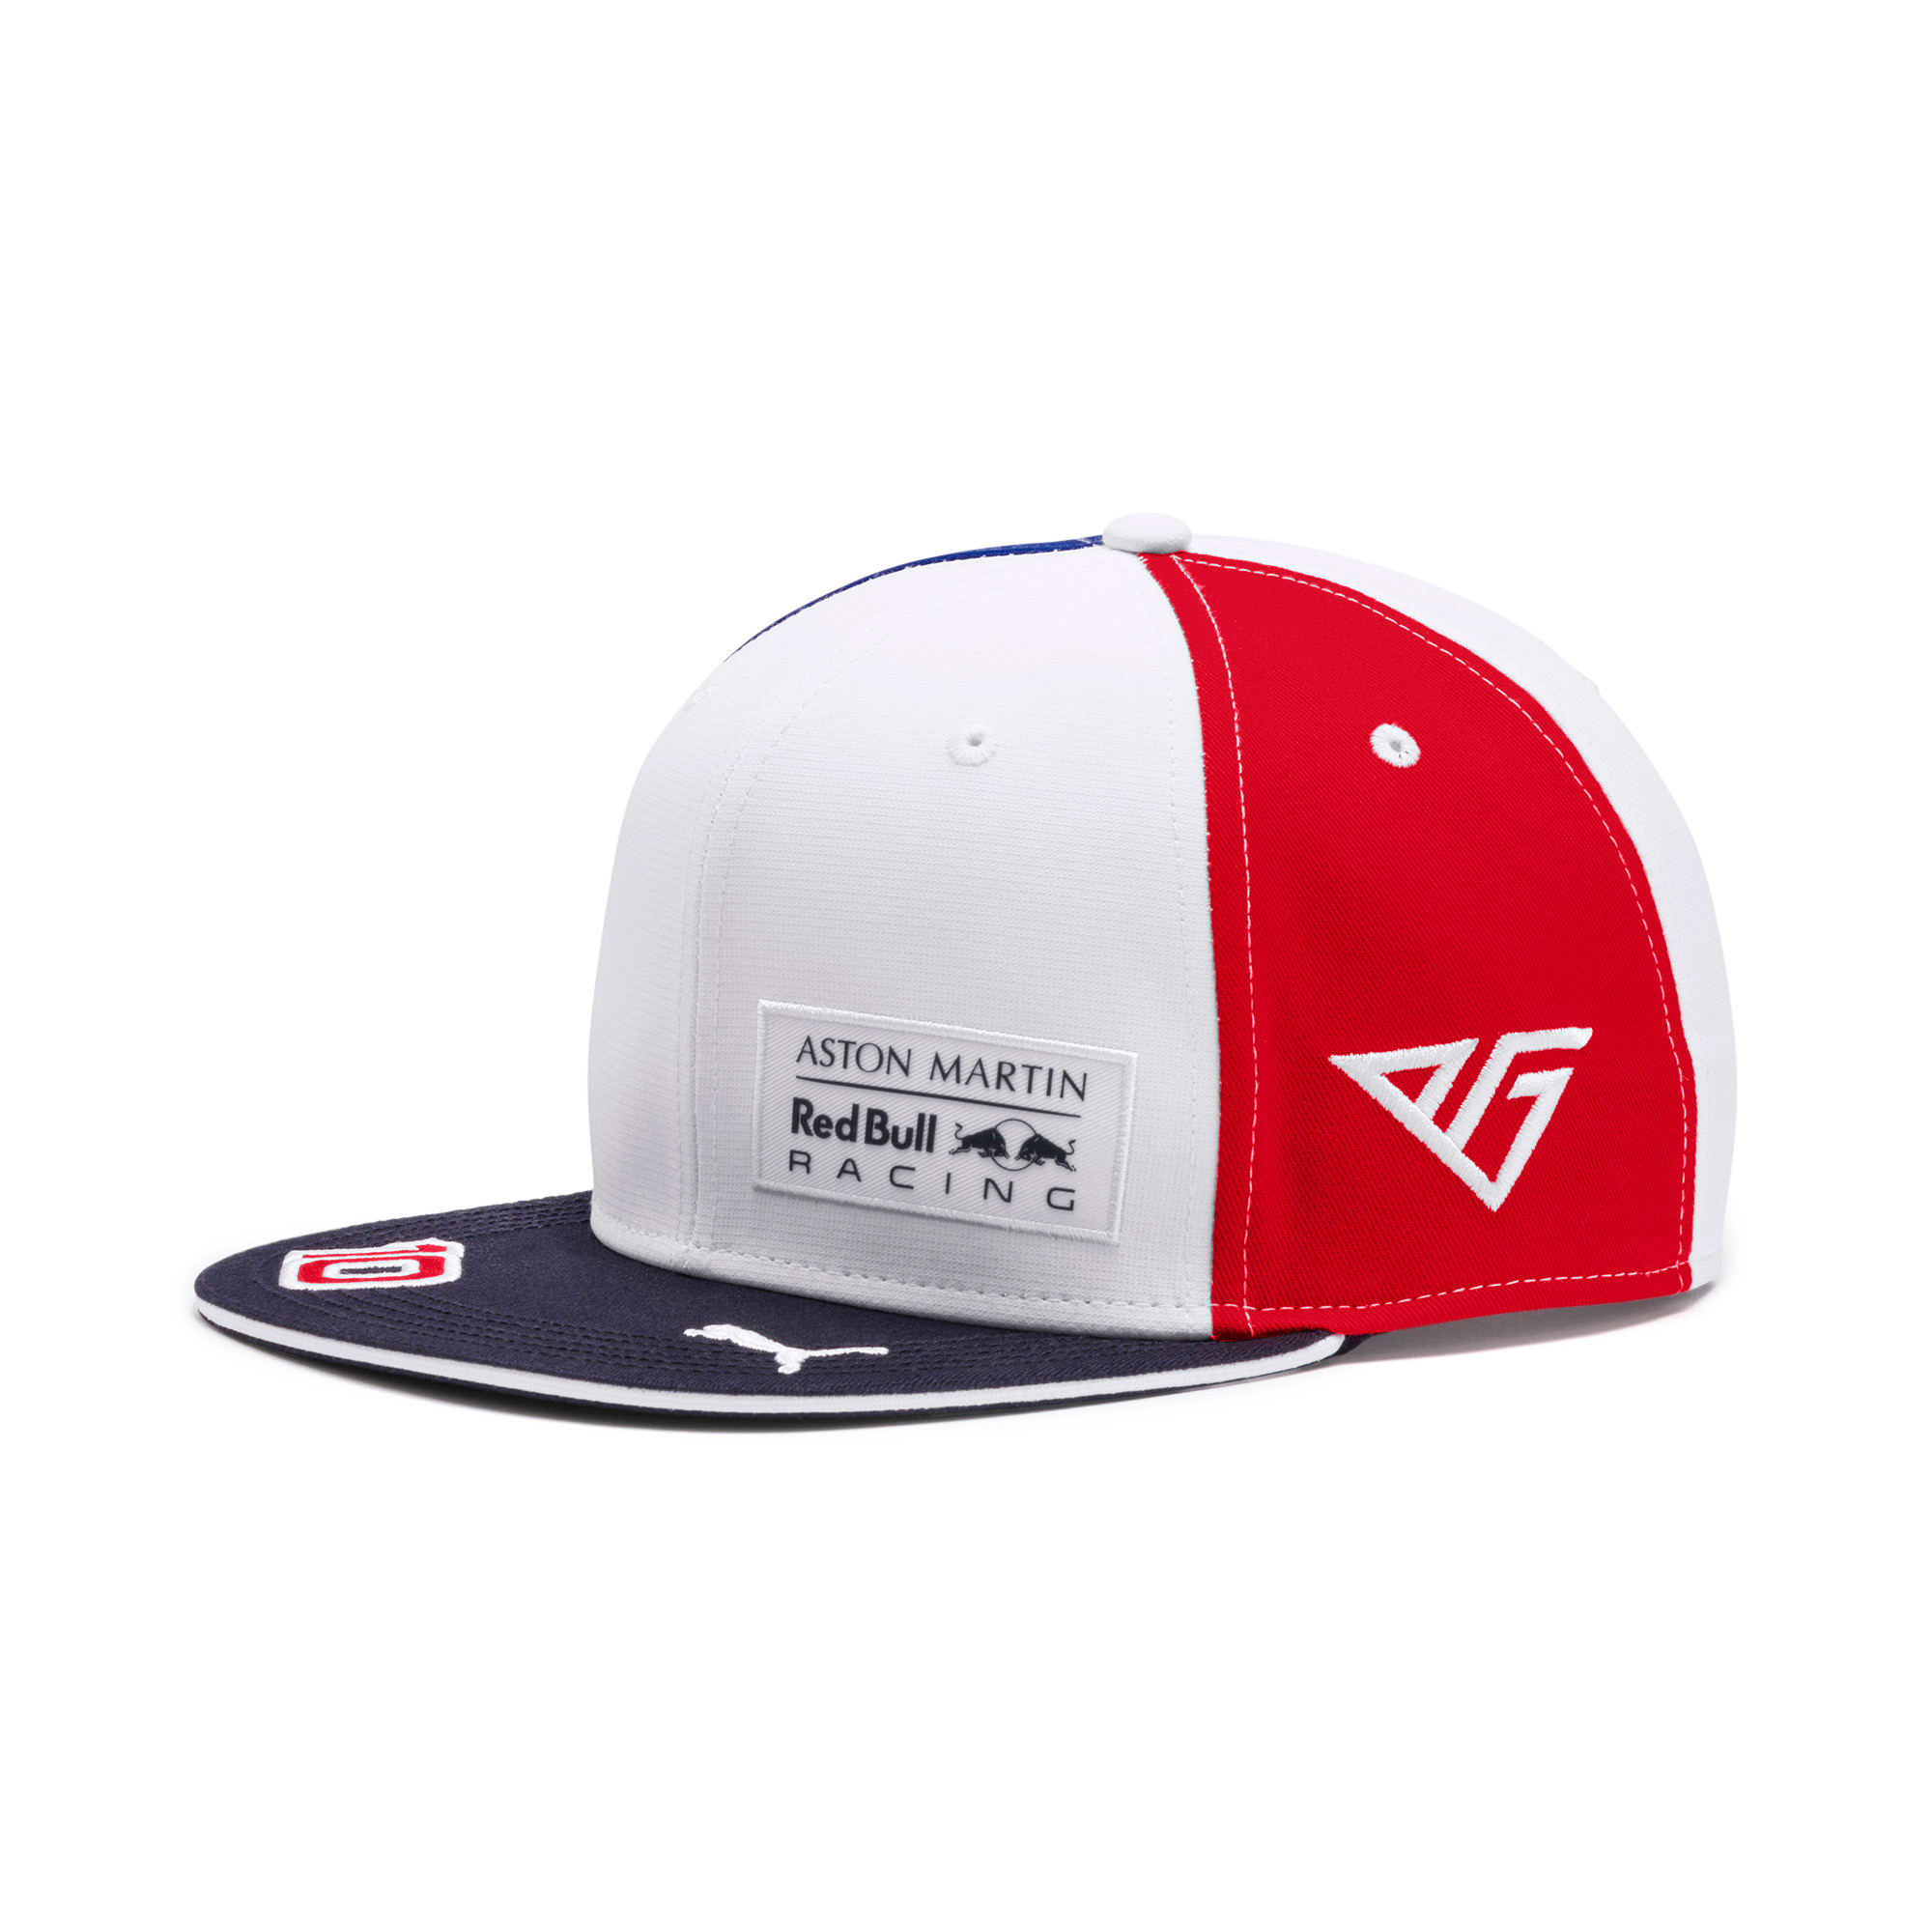 Thumbnail 1 of Red Bull Racing Pierre Gasly France '19 FB Cap, Puma White-Chinese Red, medium